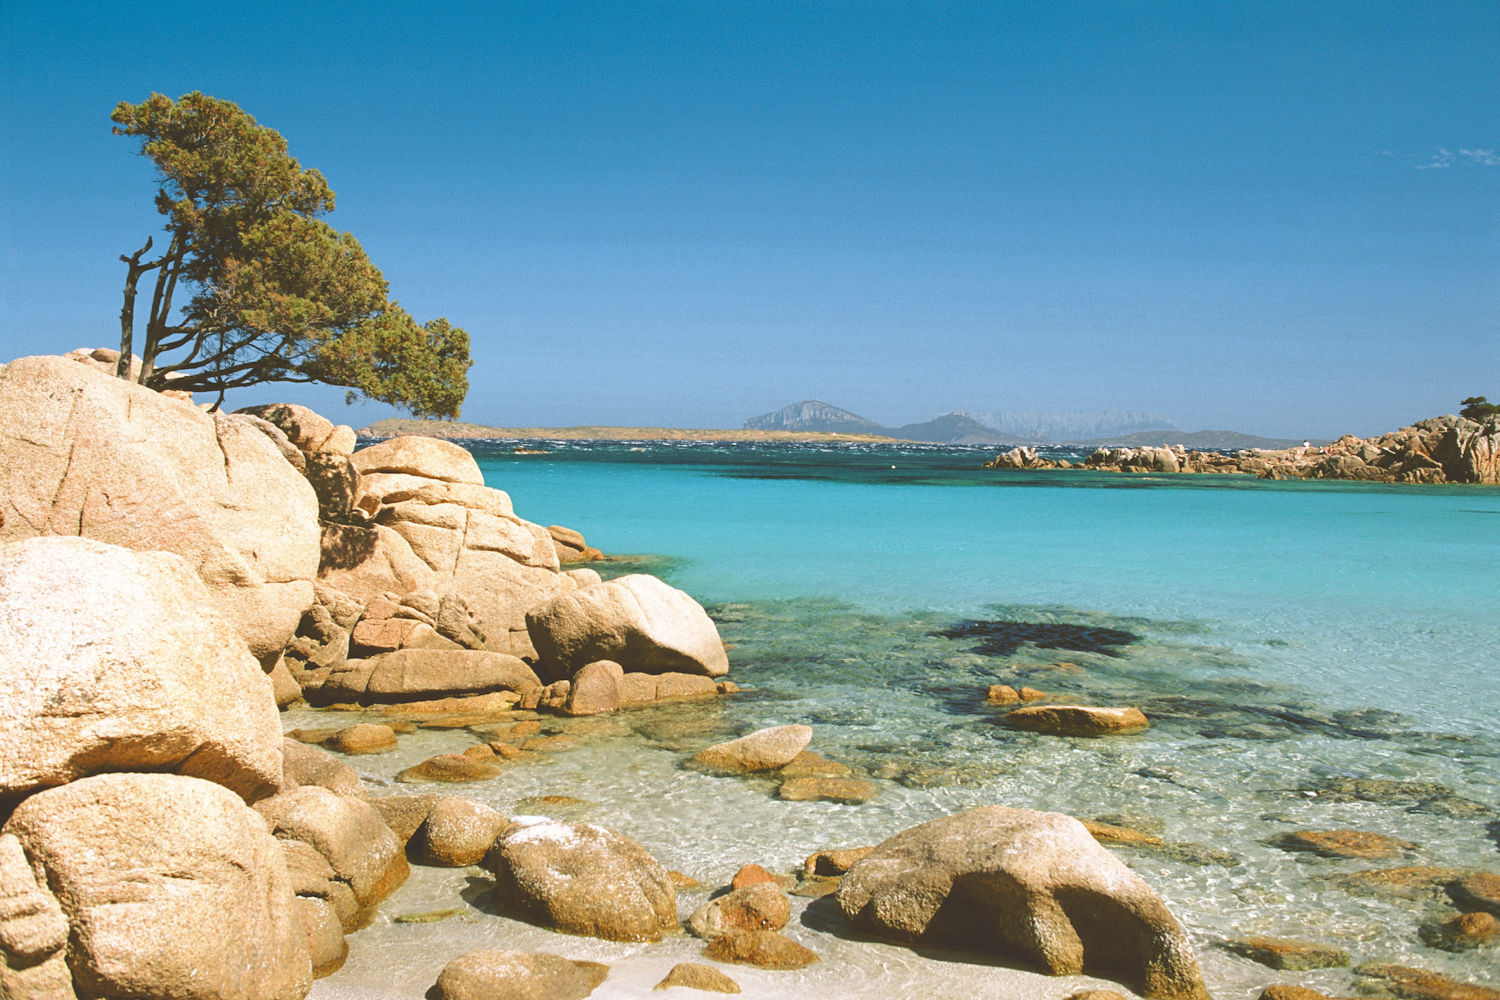 Beach at archipelago La Maddalena